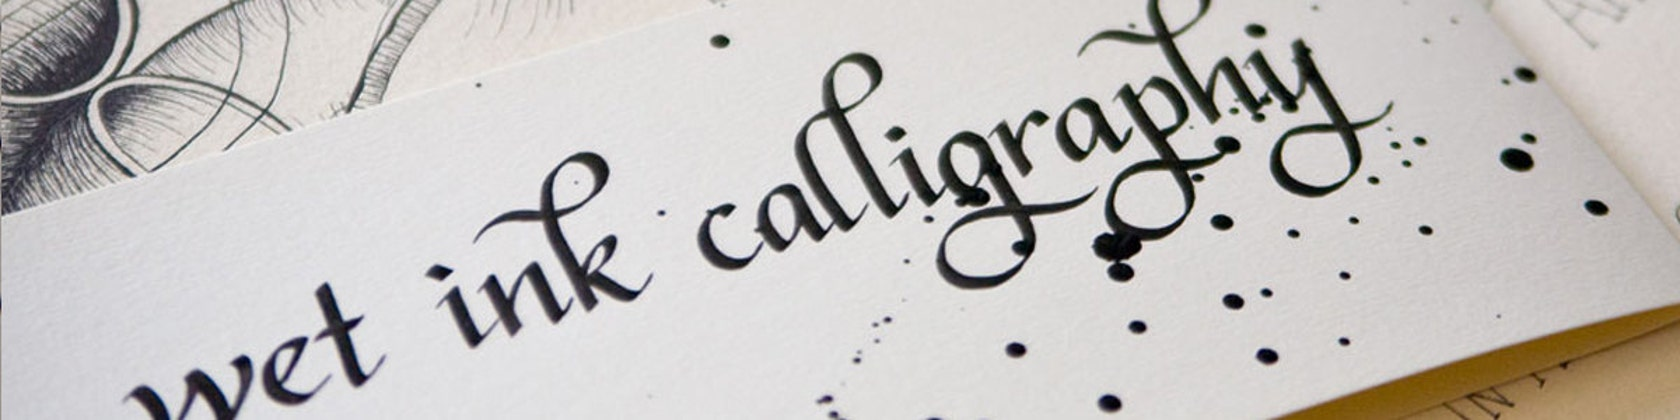 Wet Ink Calligraphy By Wetinkcalligraphy On Etsy